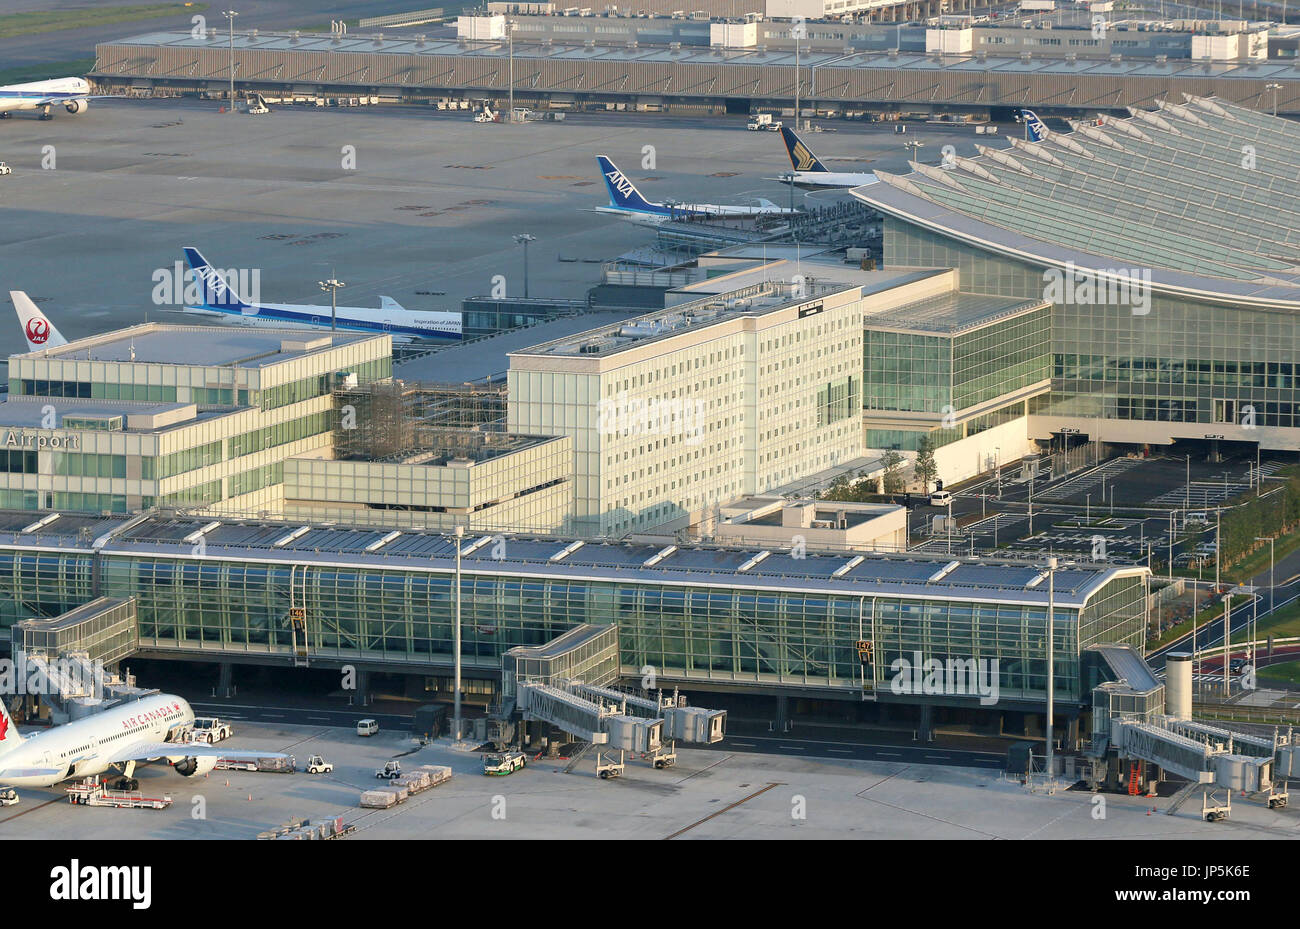 Tokyo Japan Royal Park Hotel The Haneda C Pictured On Sept 29 Stock Photo Alamy